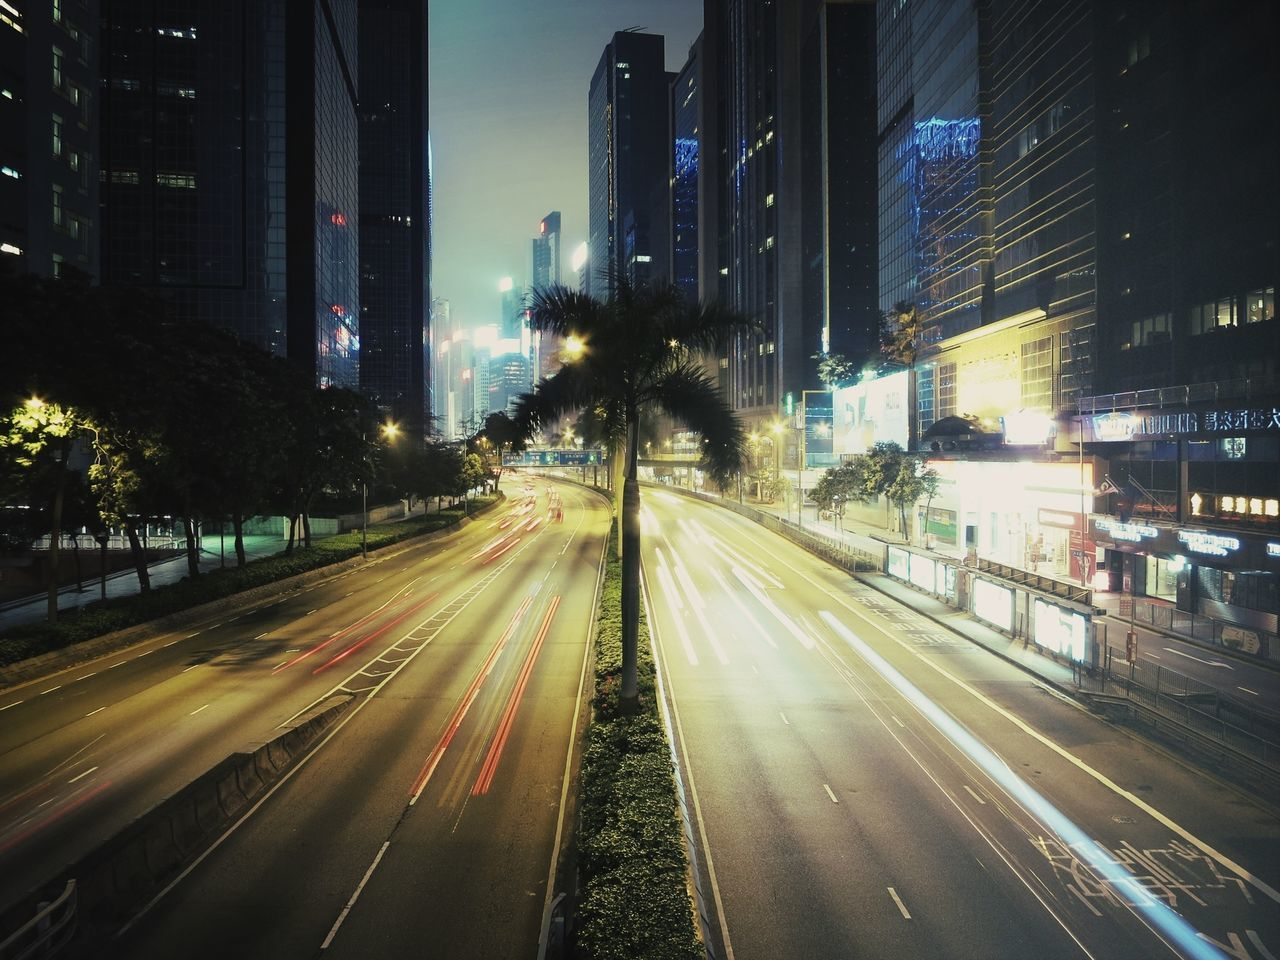 Beautiful stock photos of night, Auto Post Production Filter, Blurred Motion, Busy, City